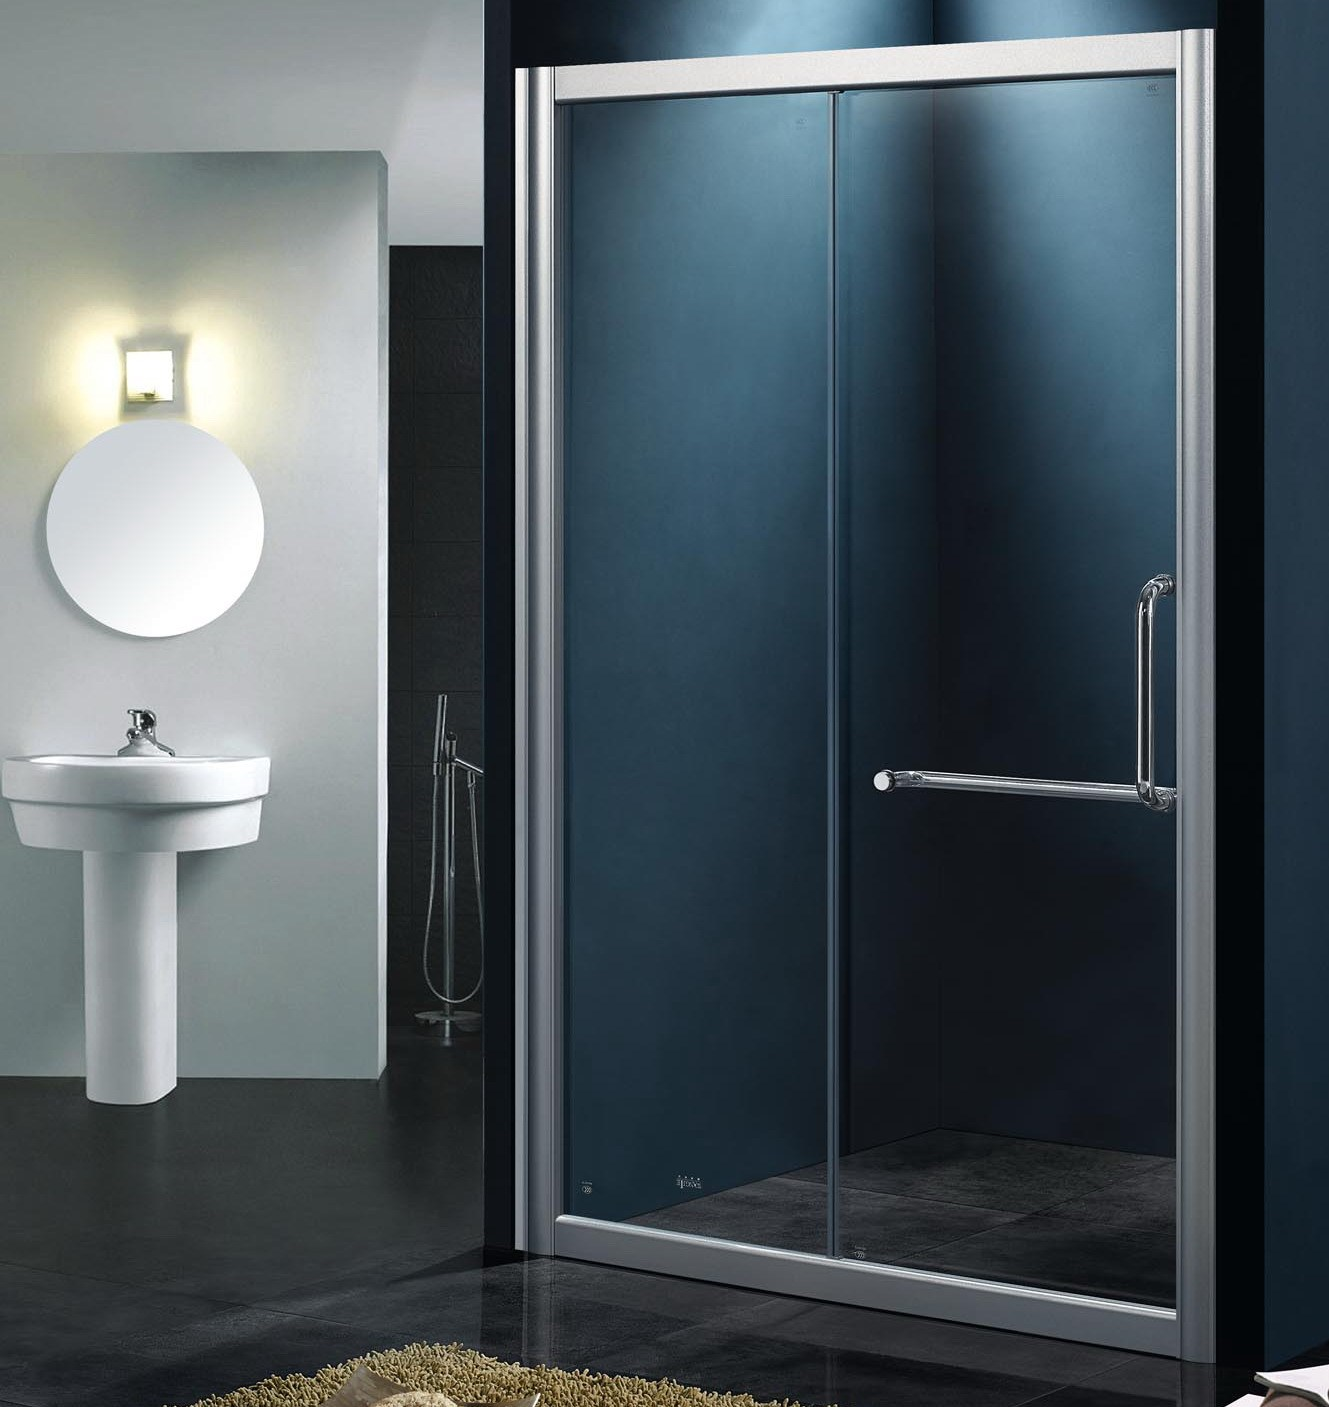 Net shower room bathroom partition bathroom glass door shower screen ...